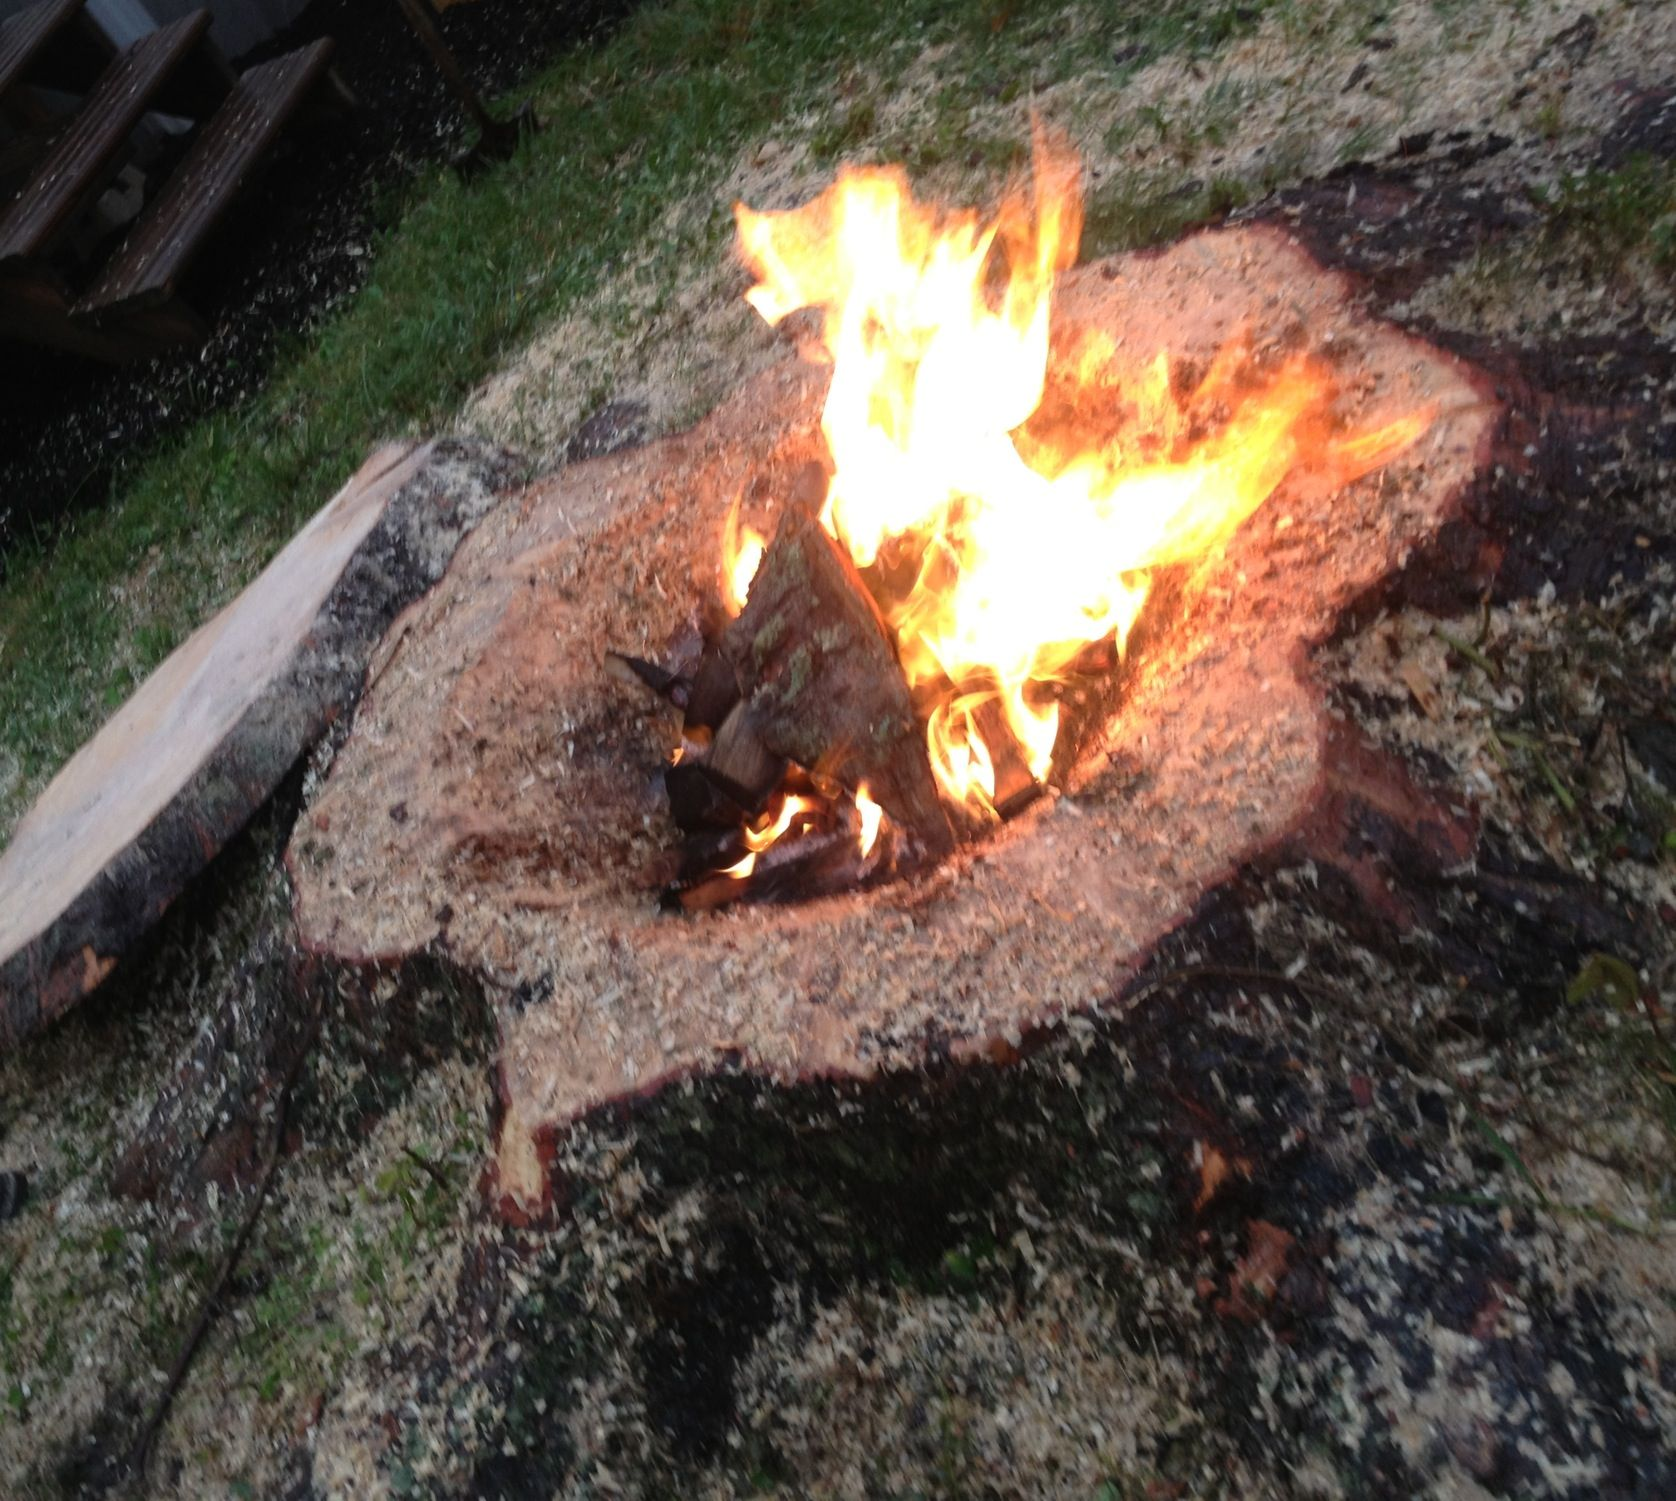 dd0d145482c3bdd3b087338652947b11 Top Result 50 Awesome Backyard Creations Fire Pit Picture 2018 Ojr7